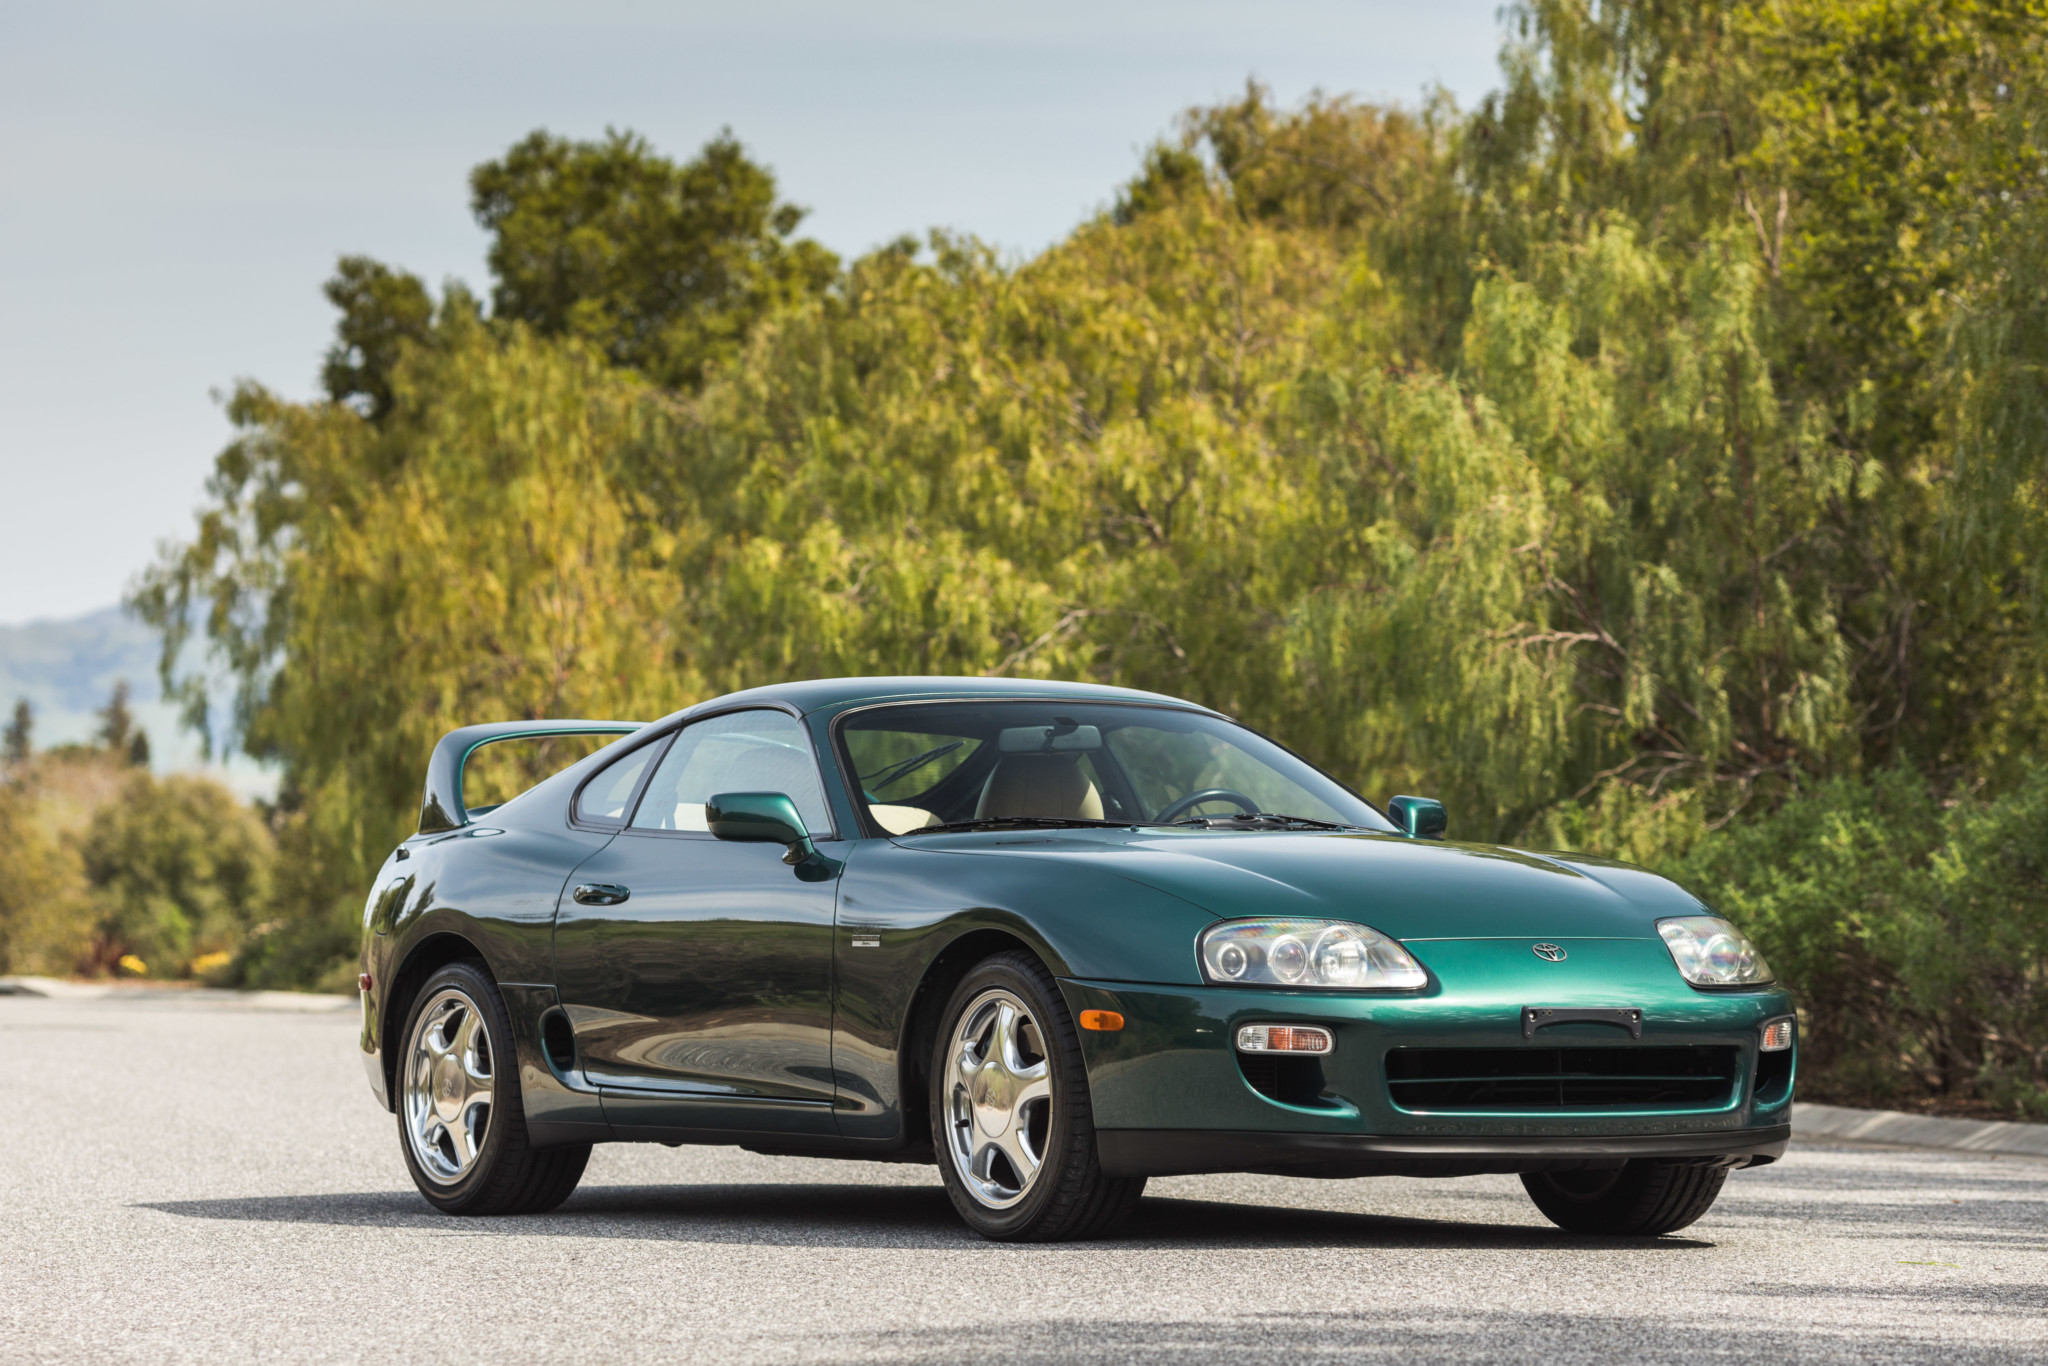 Toyota-Supra-Twin-Turbo-1997-sale-11